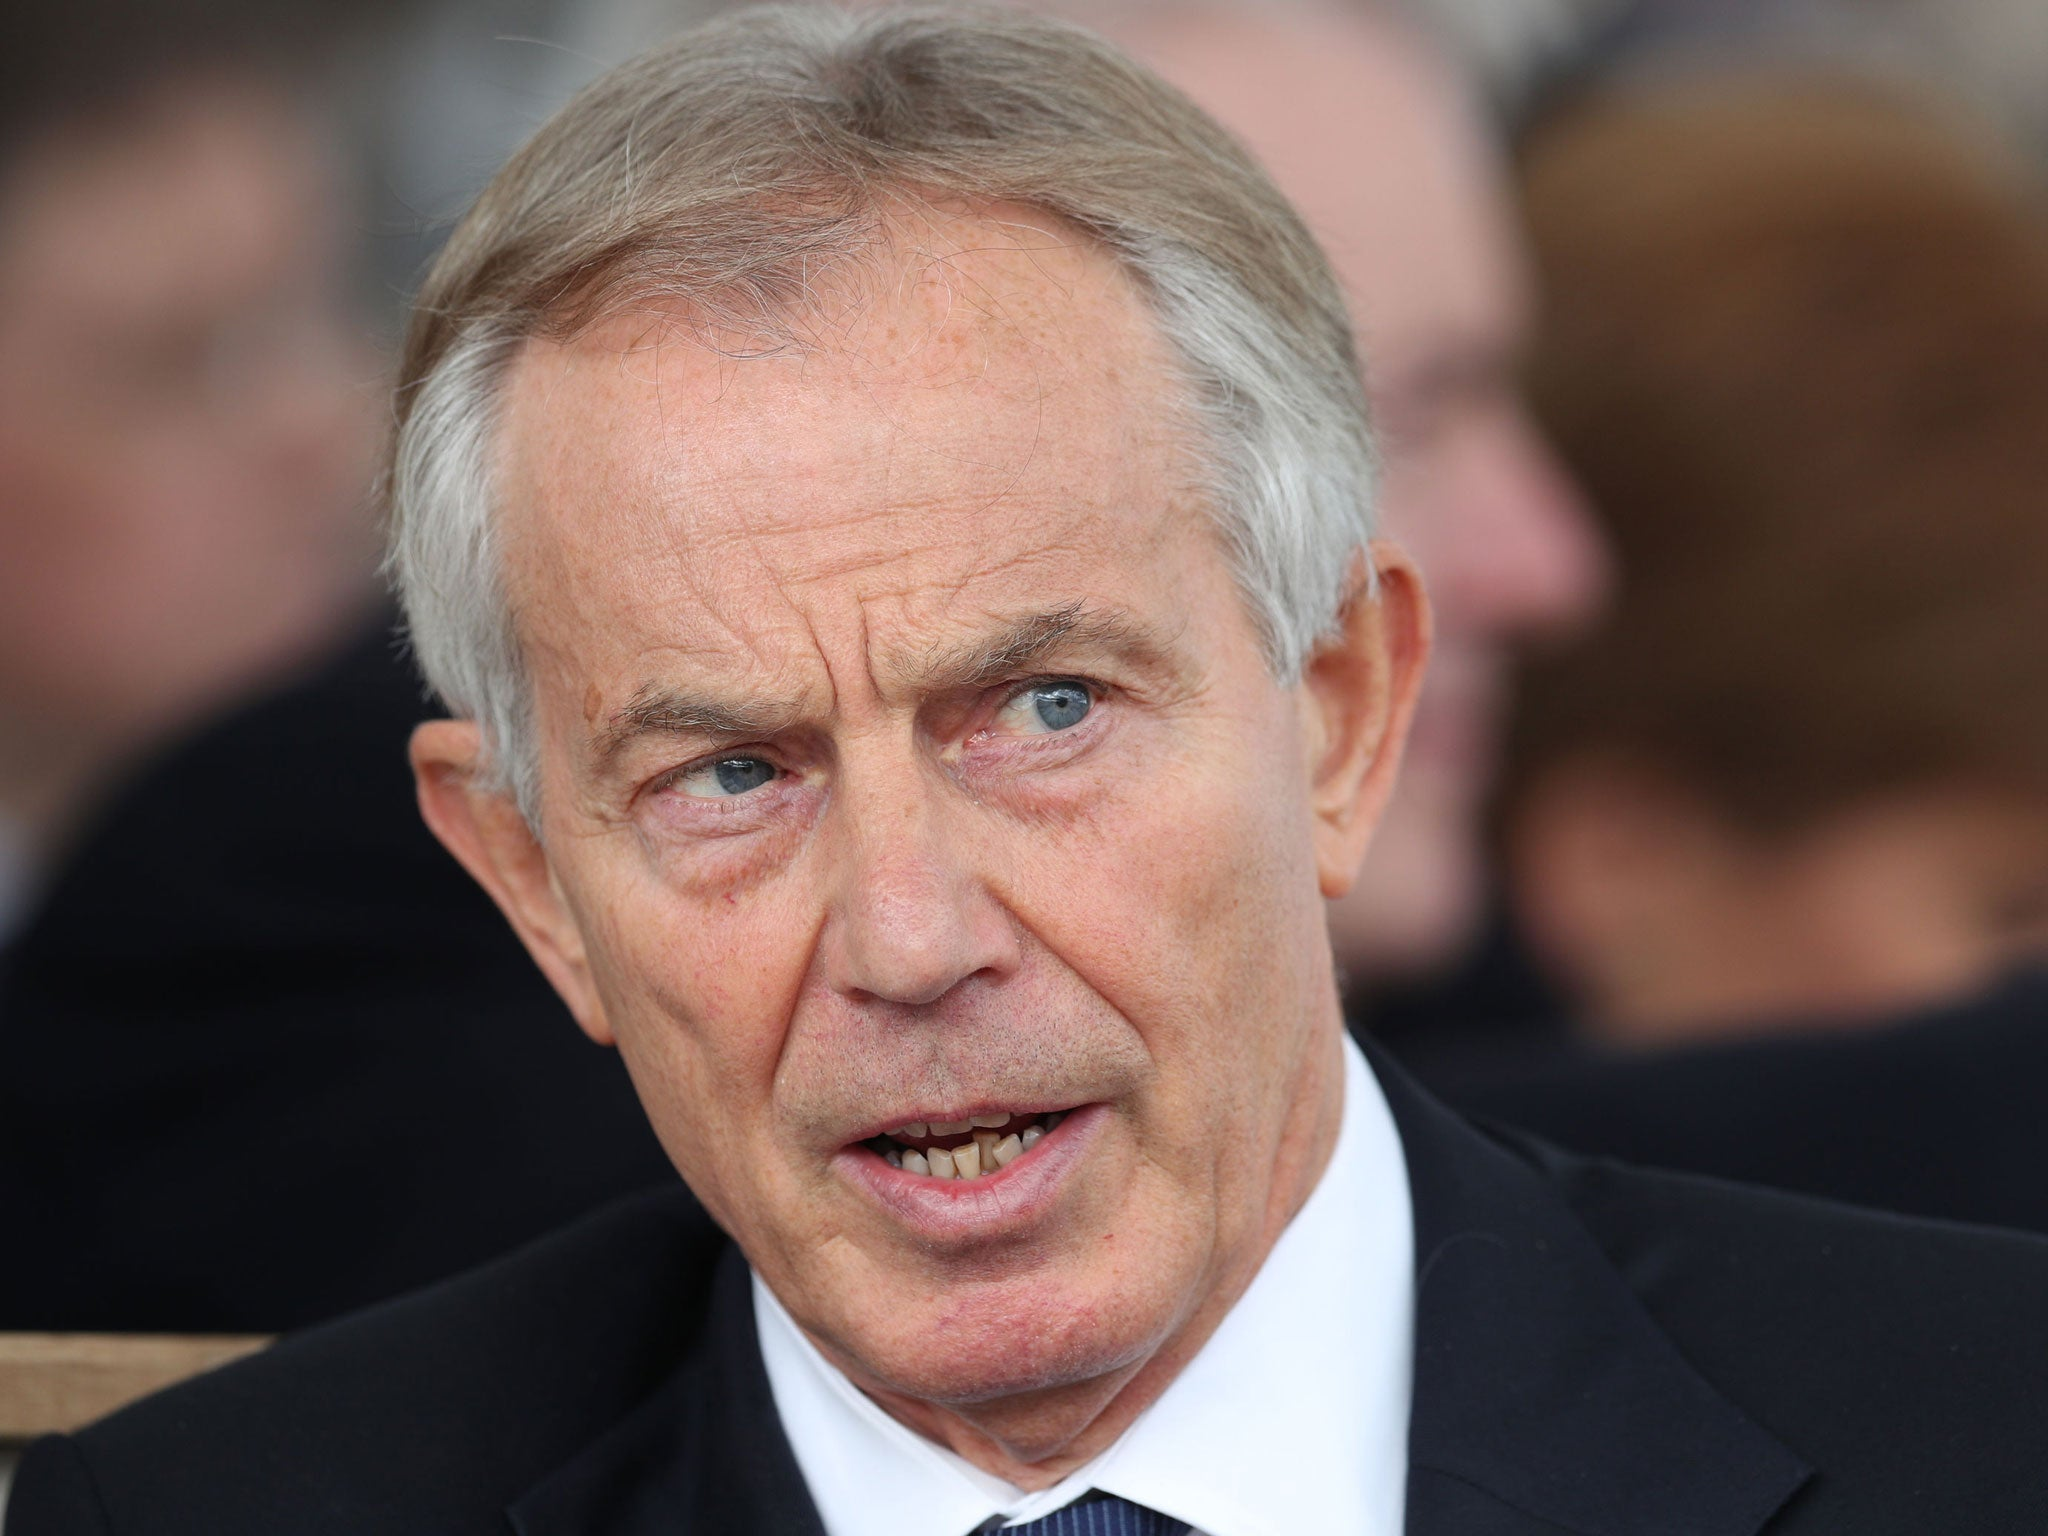 Blair says Parliament 'impasse' makes further Brexit referendum likely